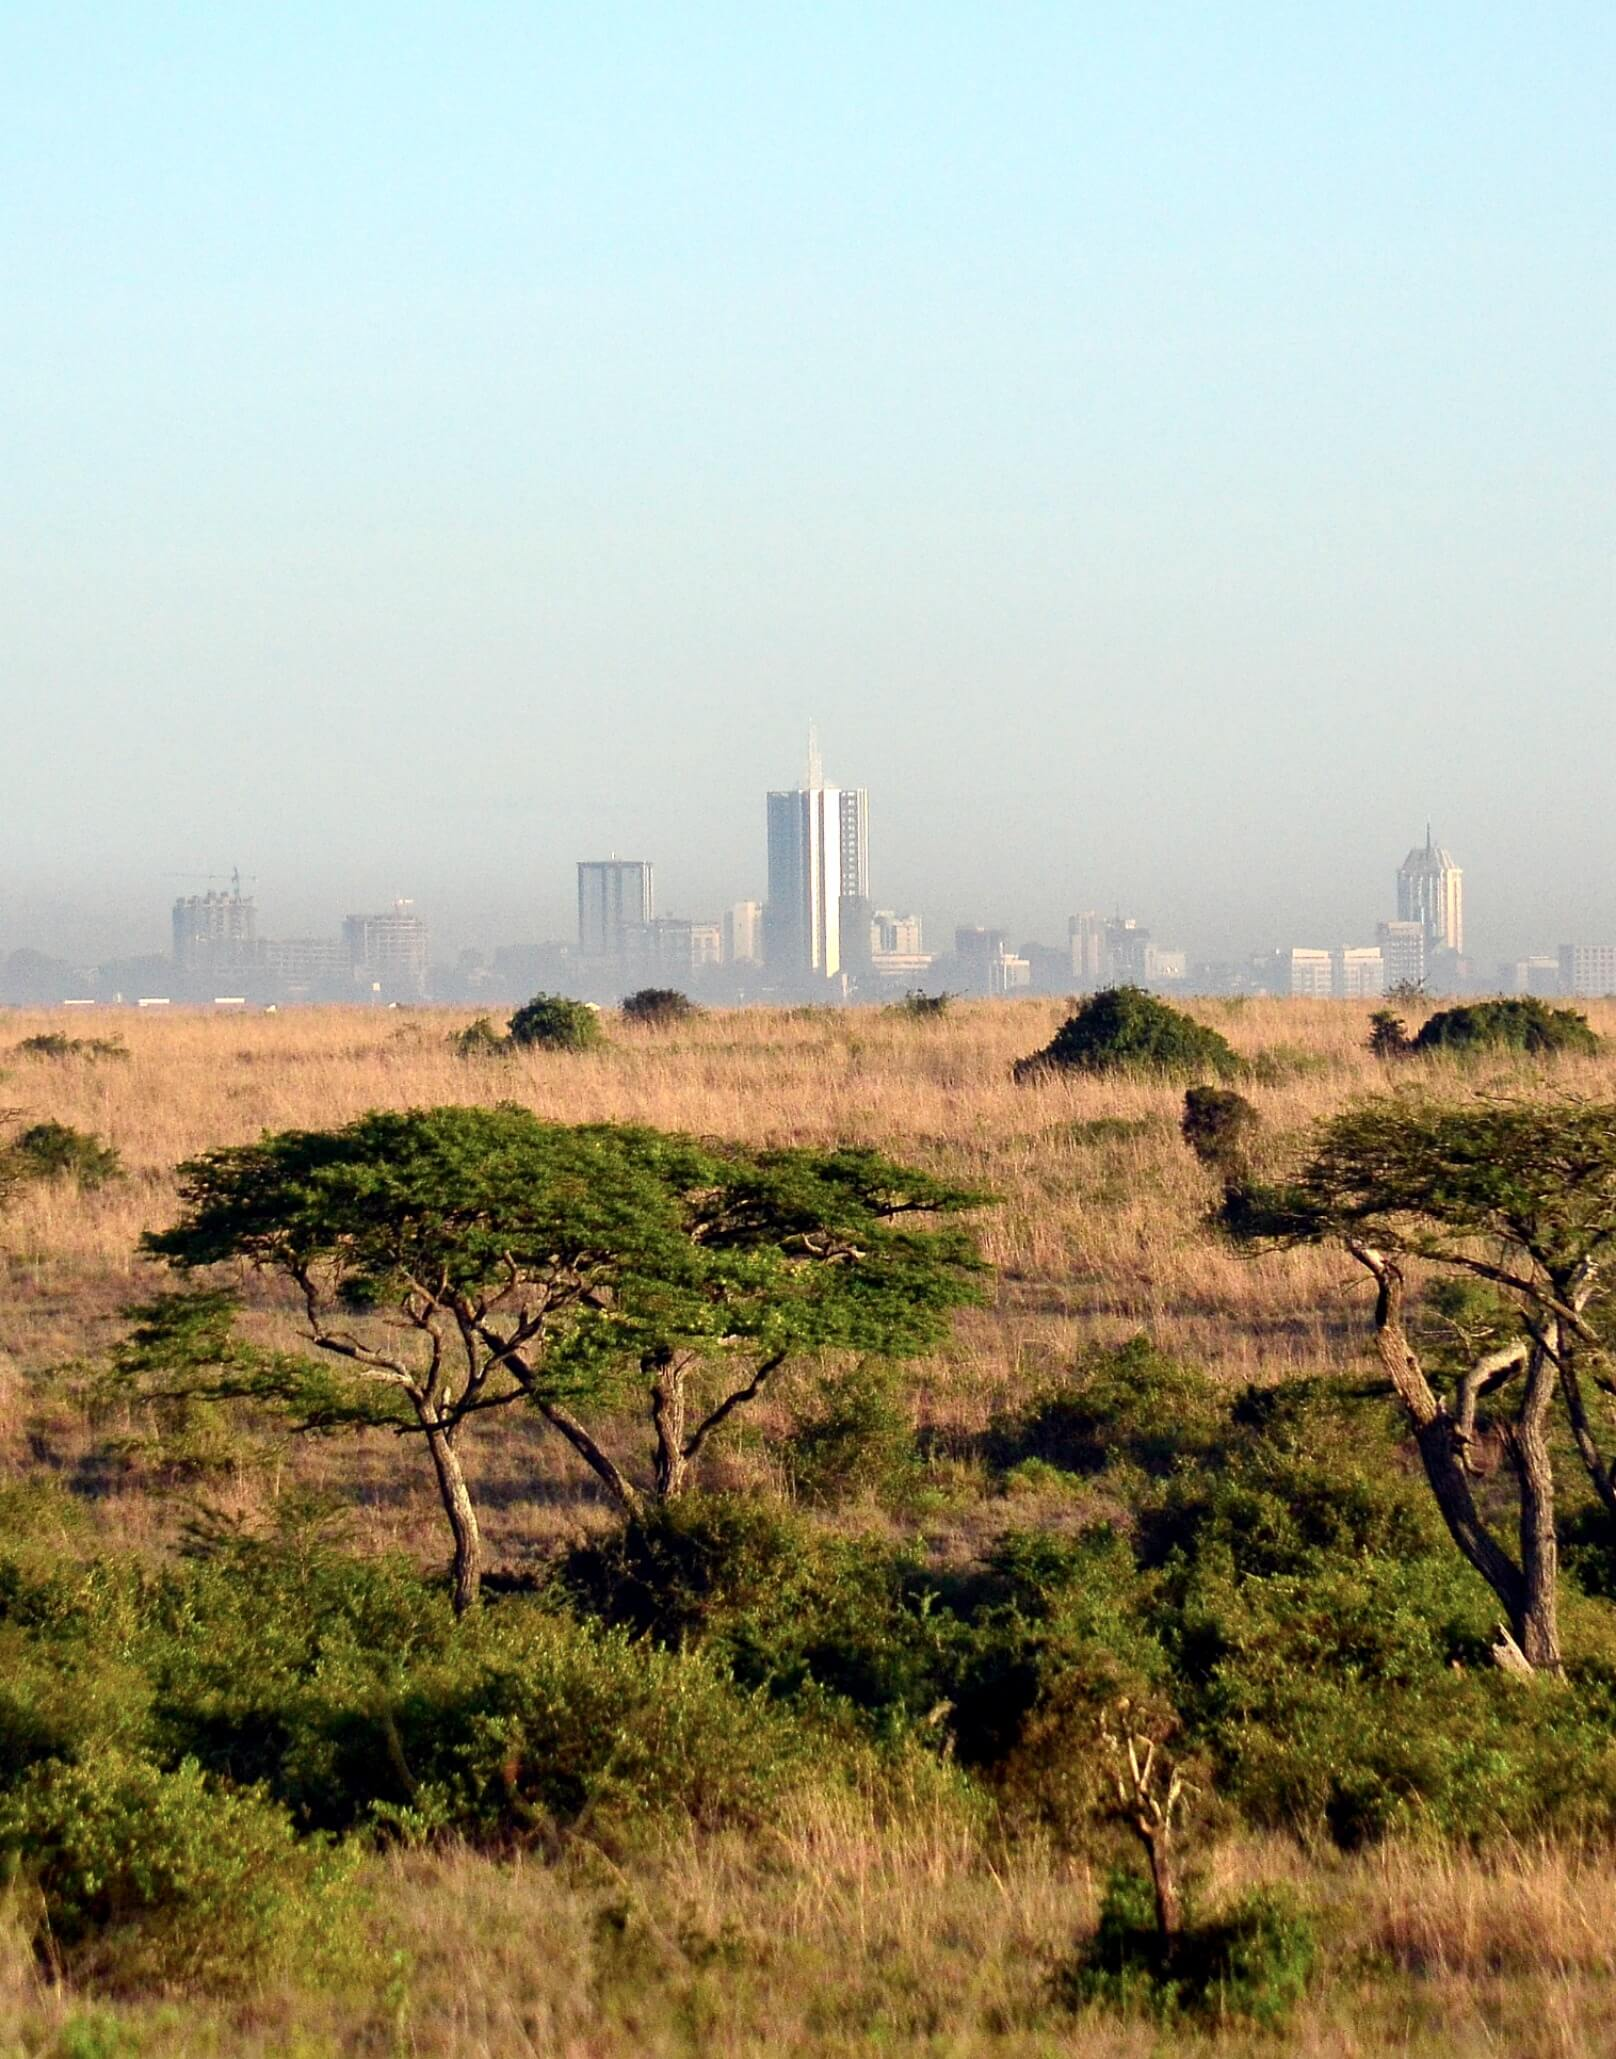 Looking over the Nairobi National Park at the city skyline in the horizon